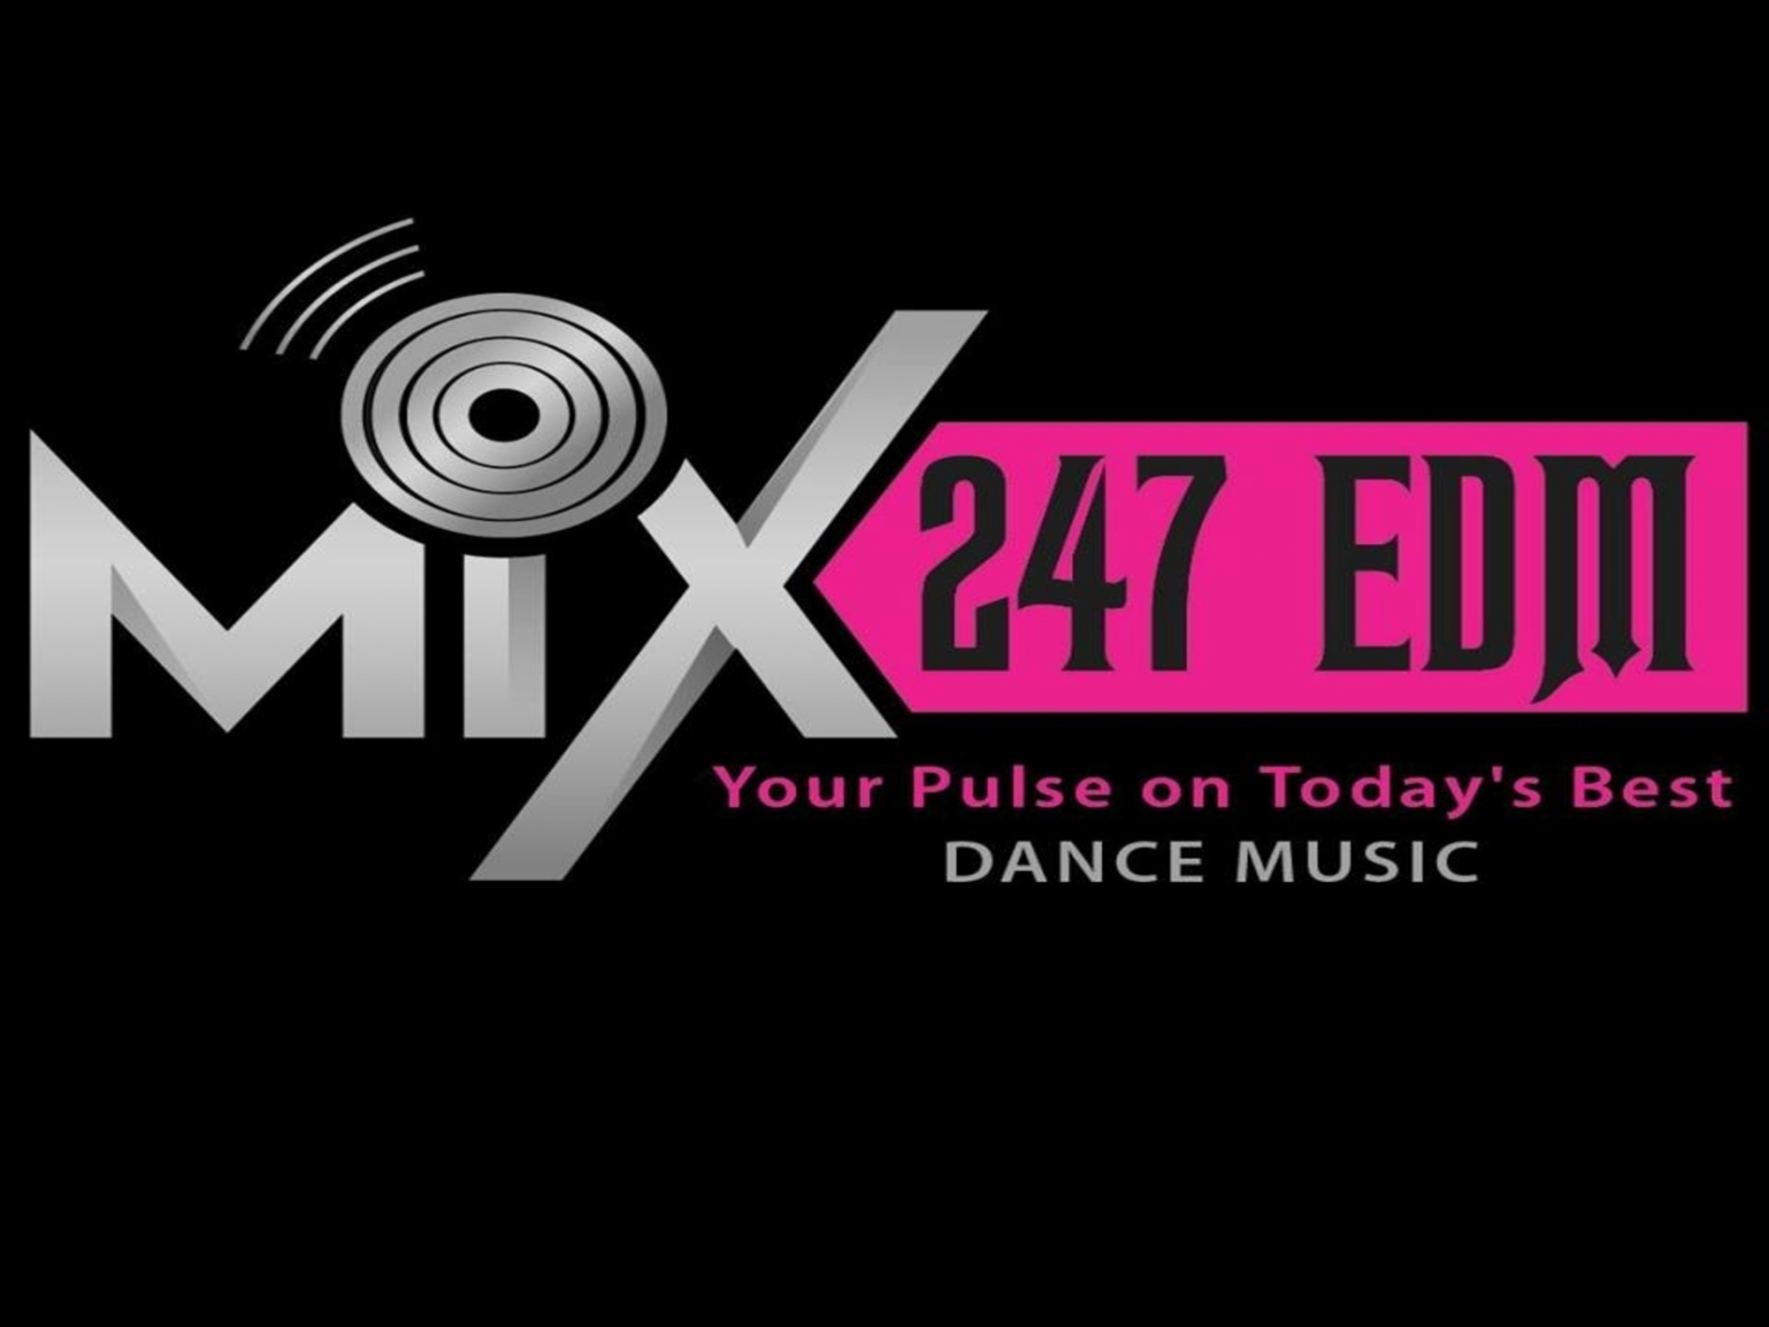 mix247edm Logo